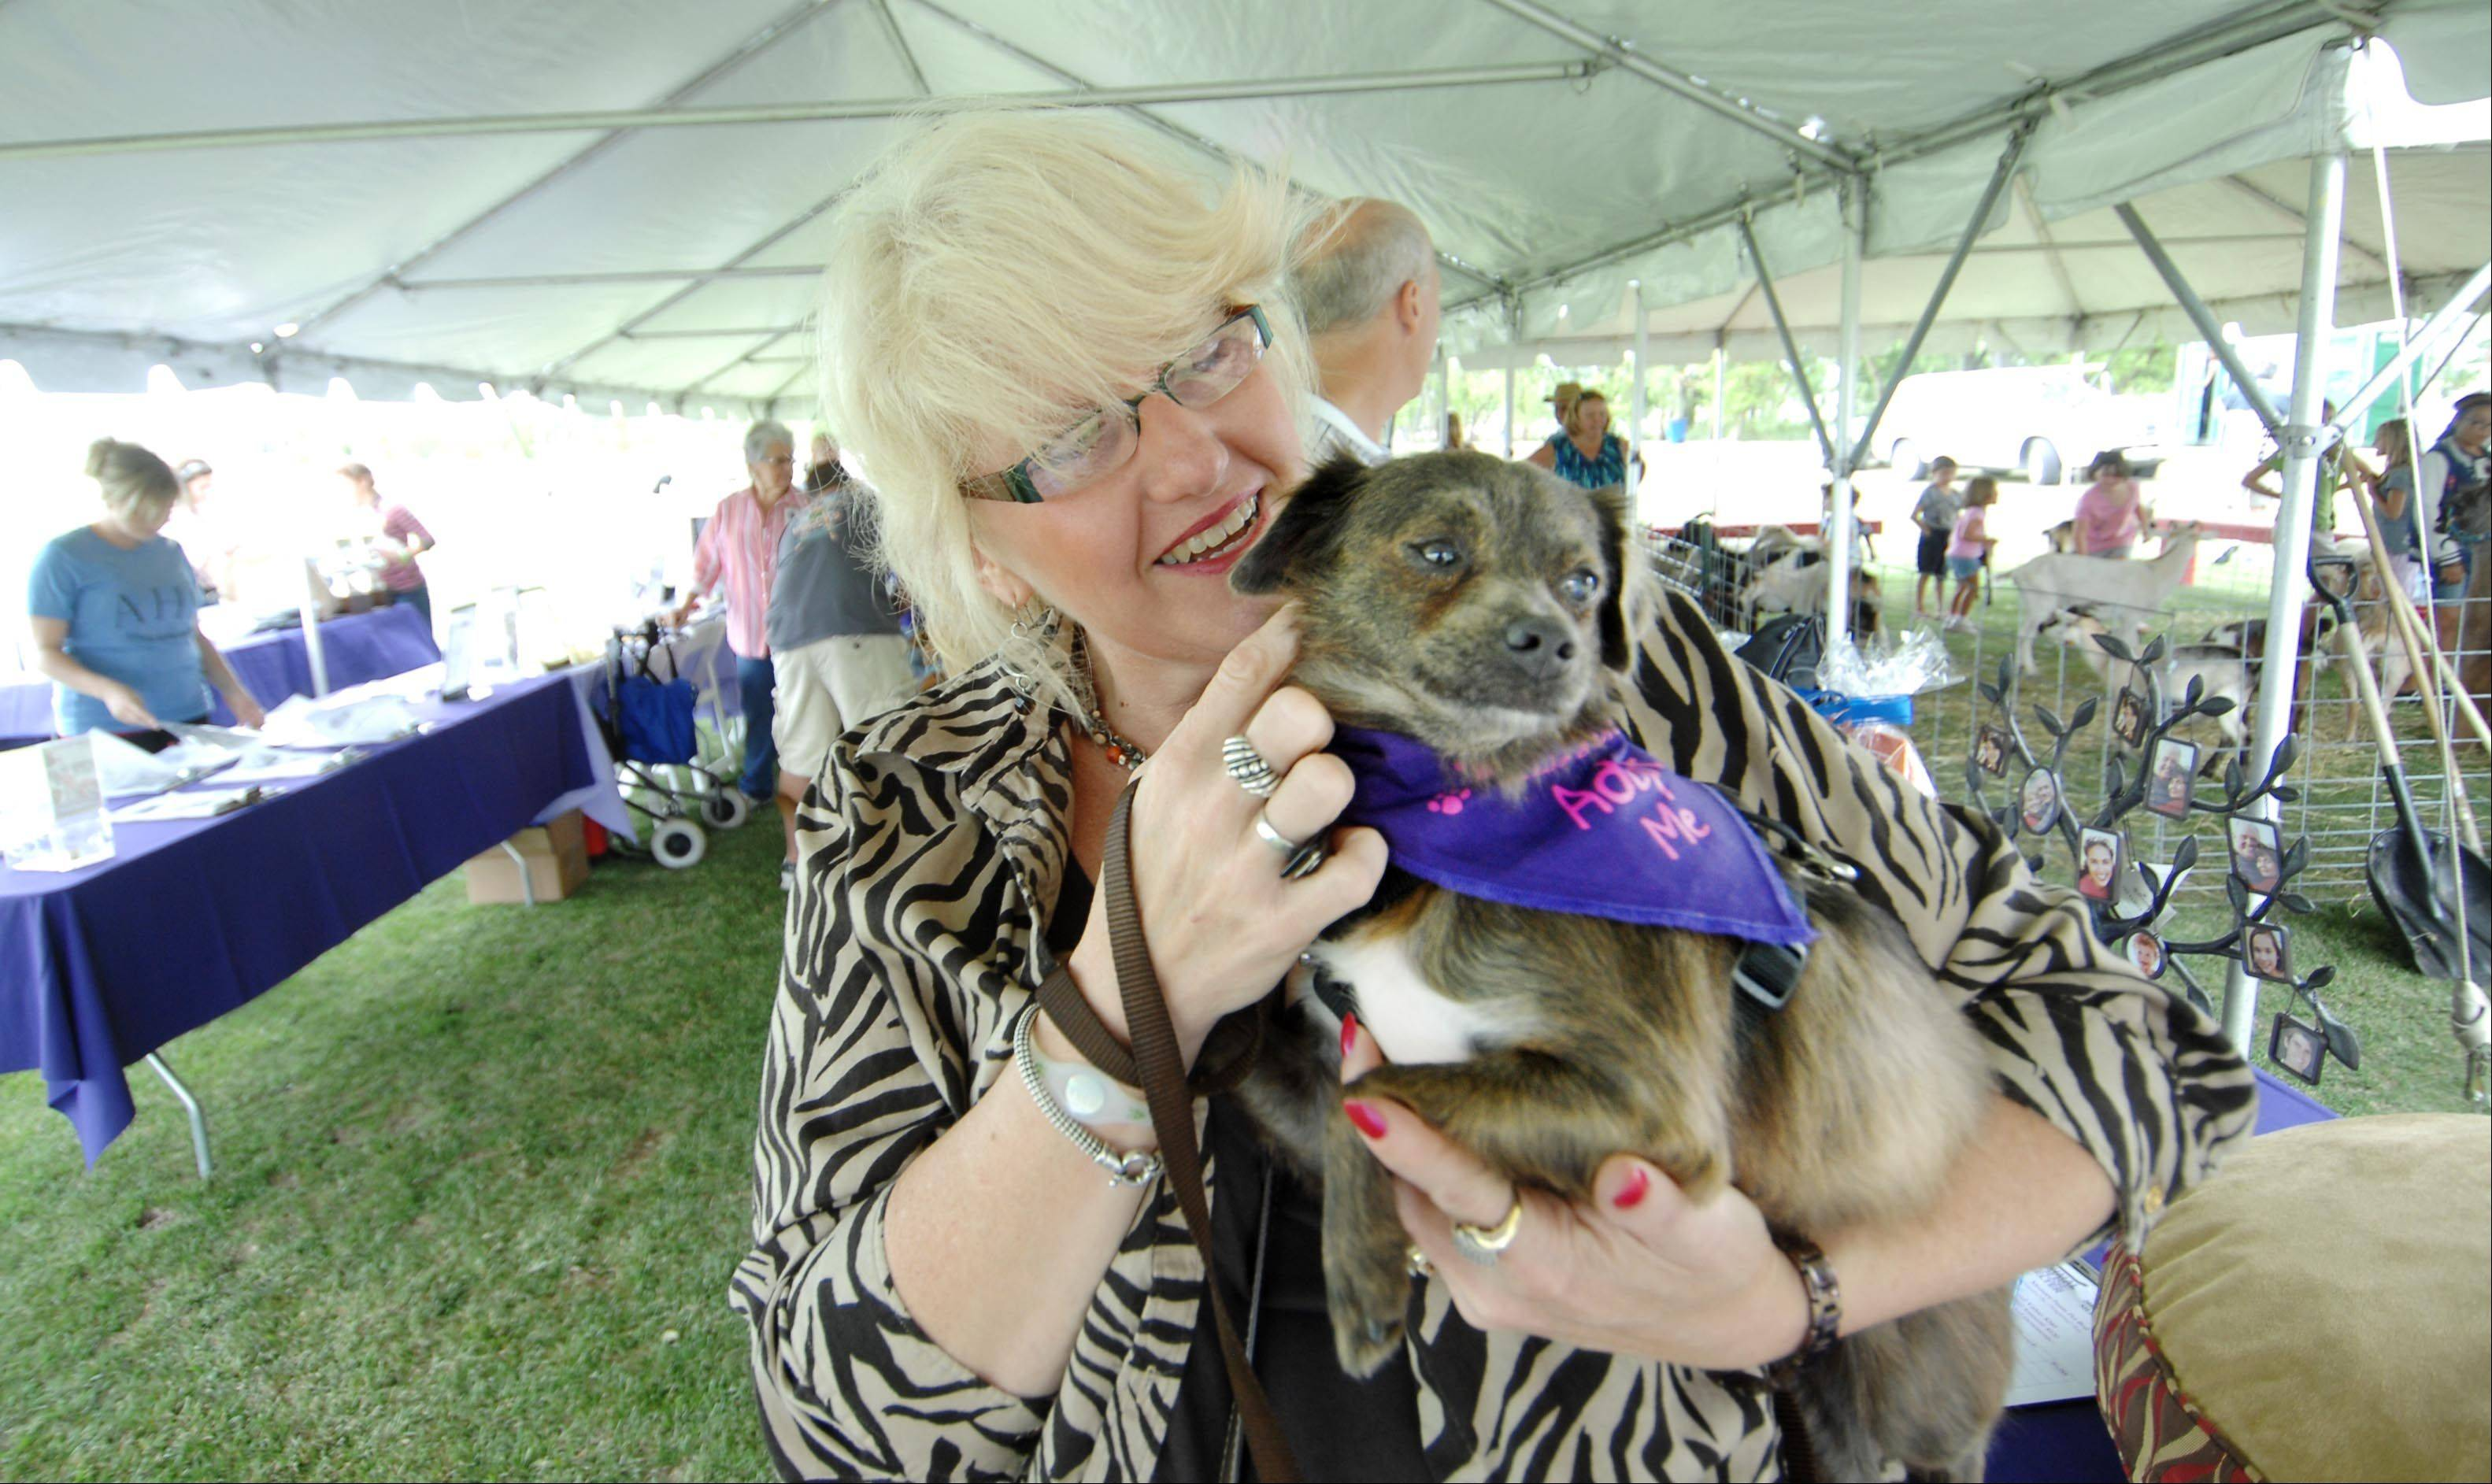 Volunteer Cami Brown holds Cinnamon, a three-year-old Sheltie mix, at the second annual Polo for Pets Tailgate Charity Match Sunday at the Dahlwood Polo Farm in Elgin. The match raised money for the Animal House Shelter in Huntley. Cinnamon is up for adoption.